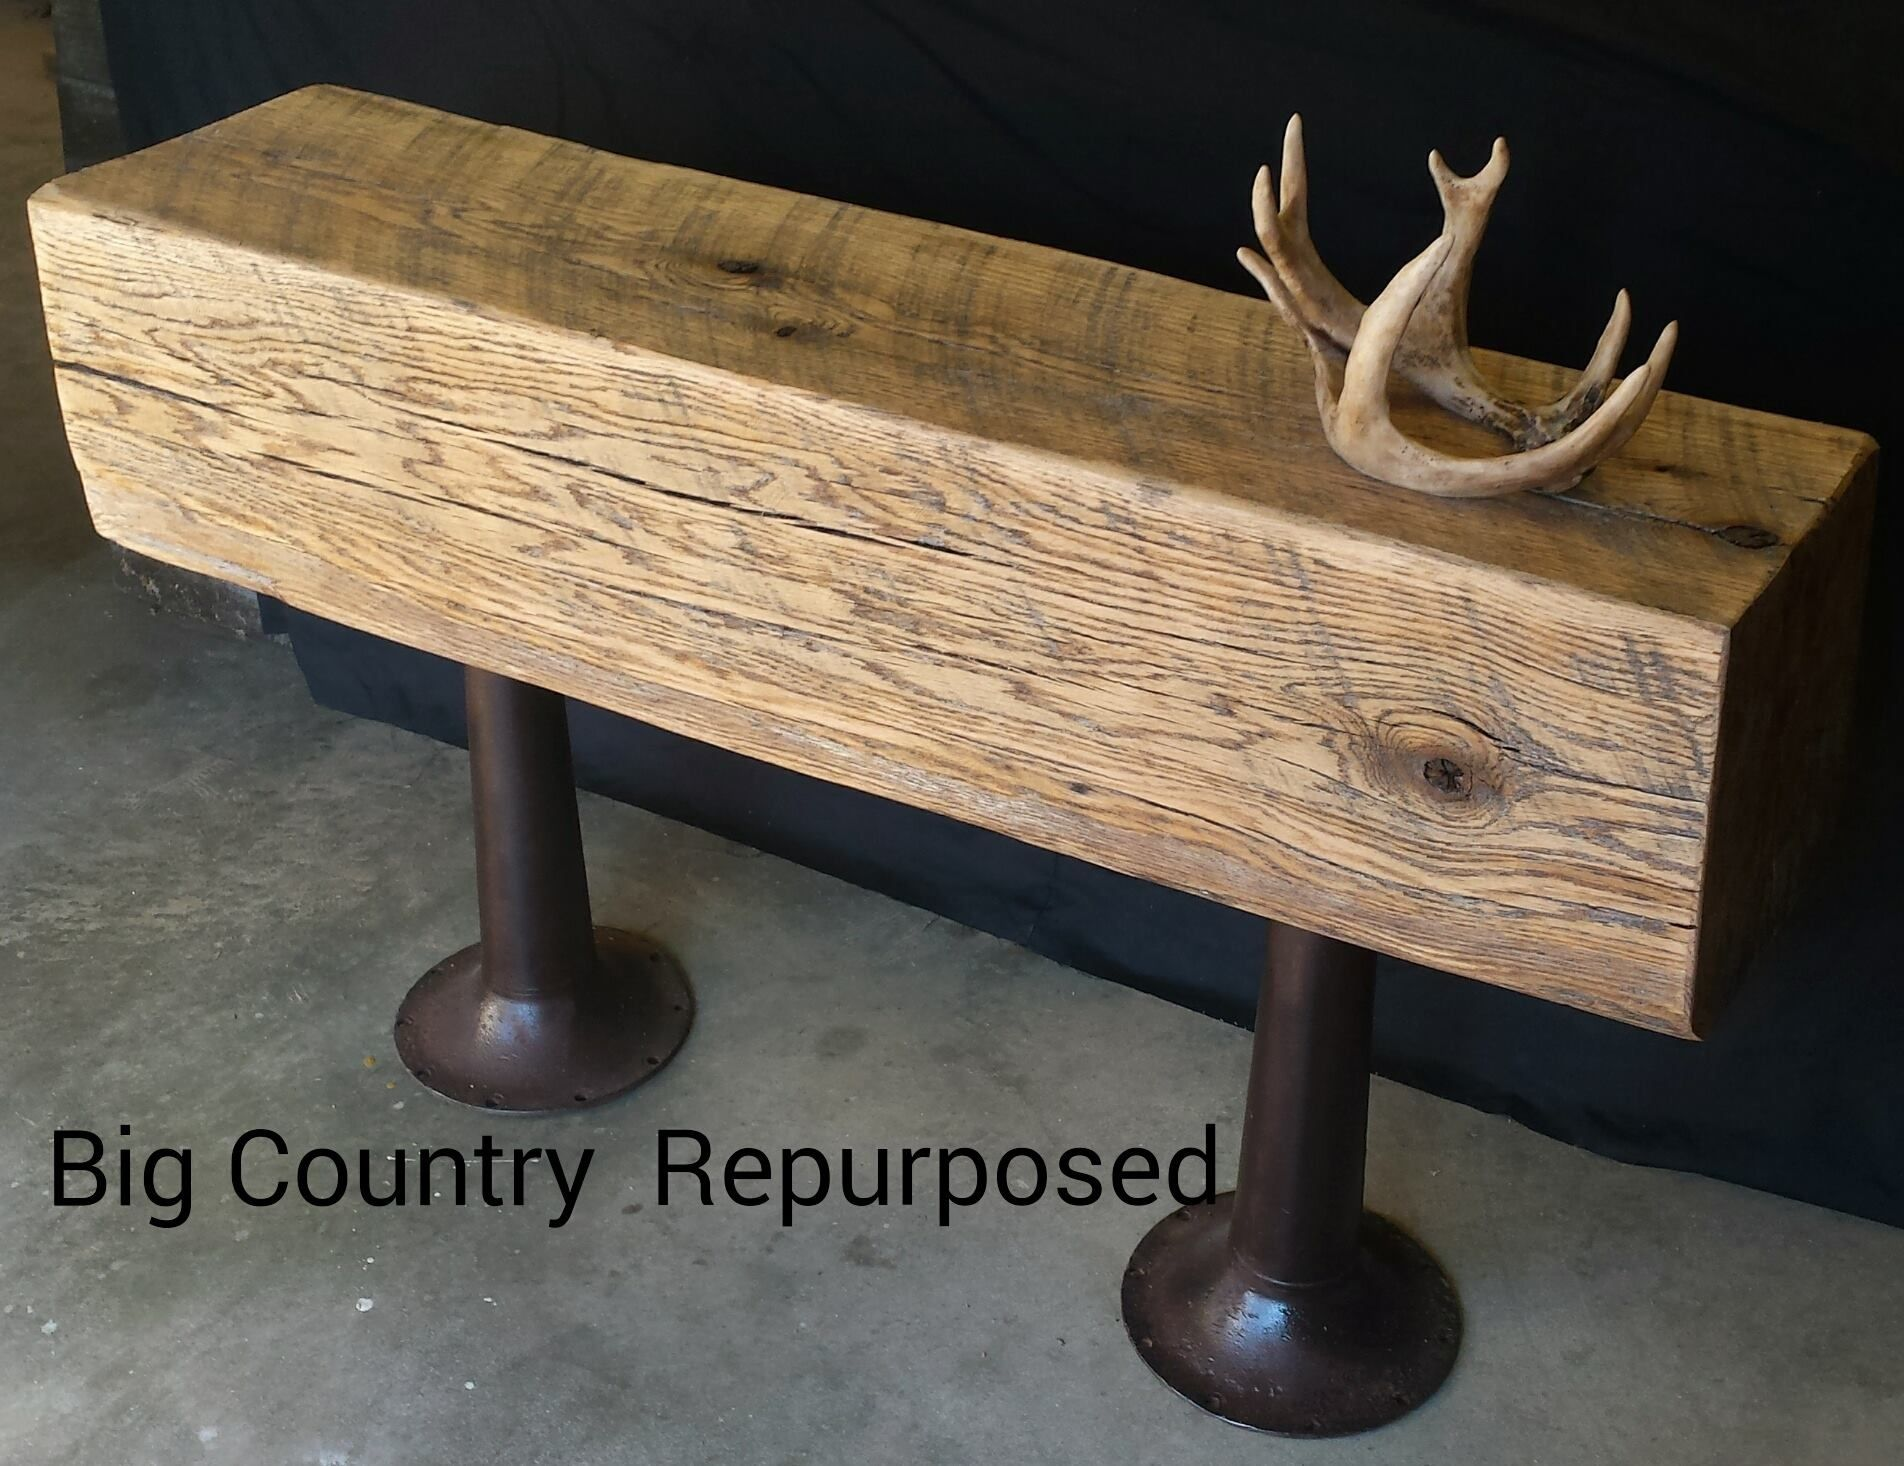 Make sofa table - Make A Statement With This Giant 12 X12 X4 Oak Beam Entry Sofa Table This Is A Very Unique Piece Because Oak Beams This Large Are Very Hard To Find